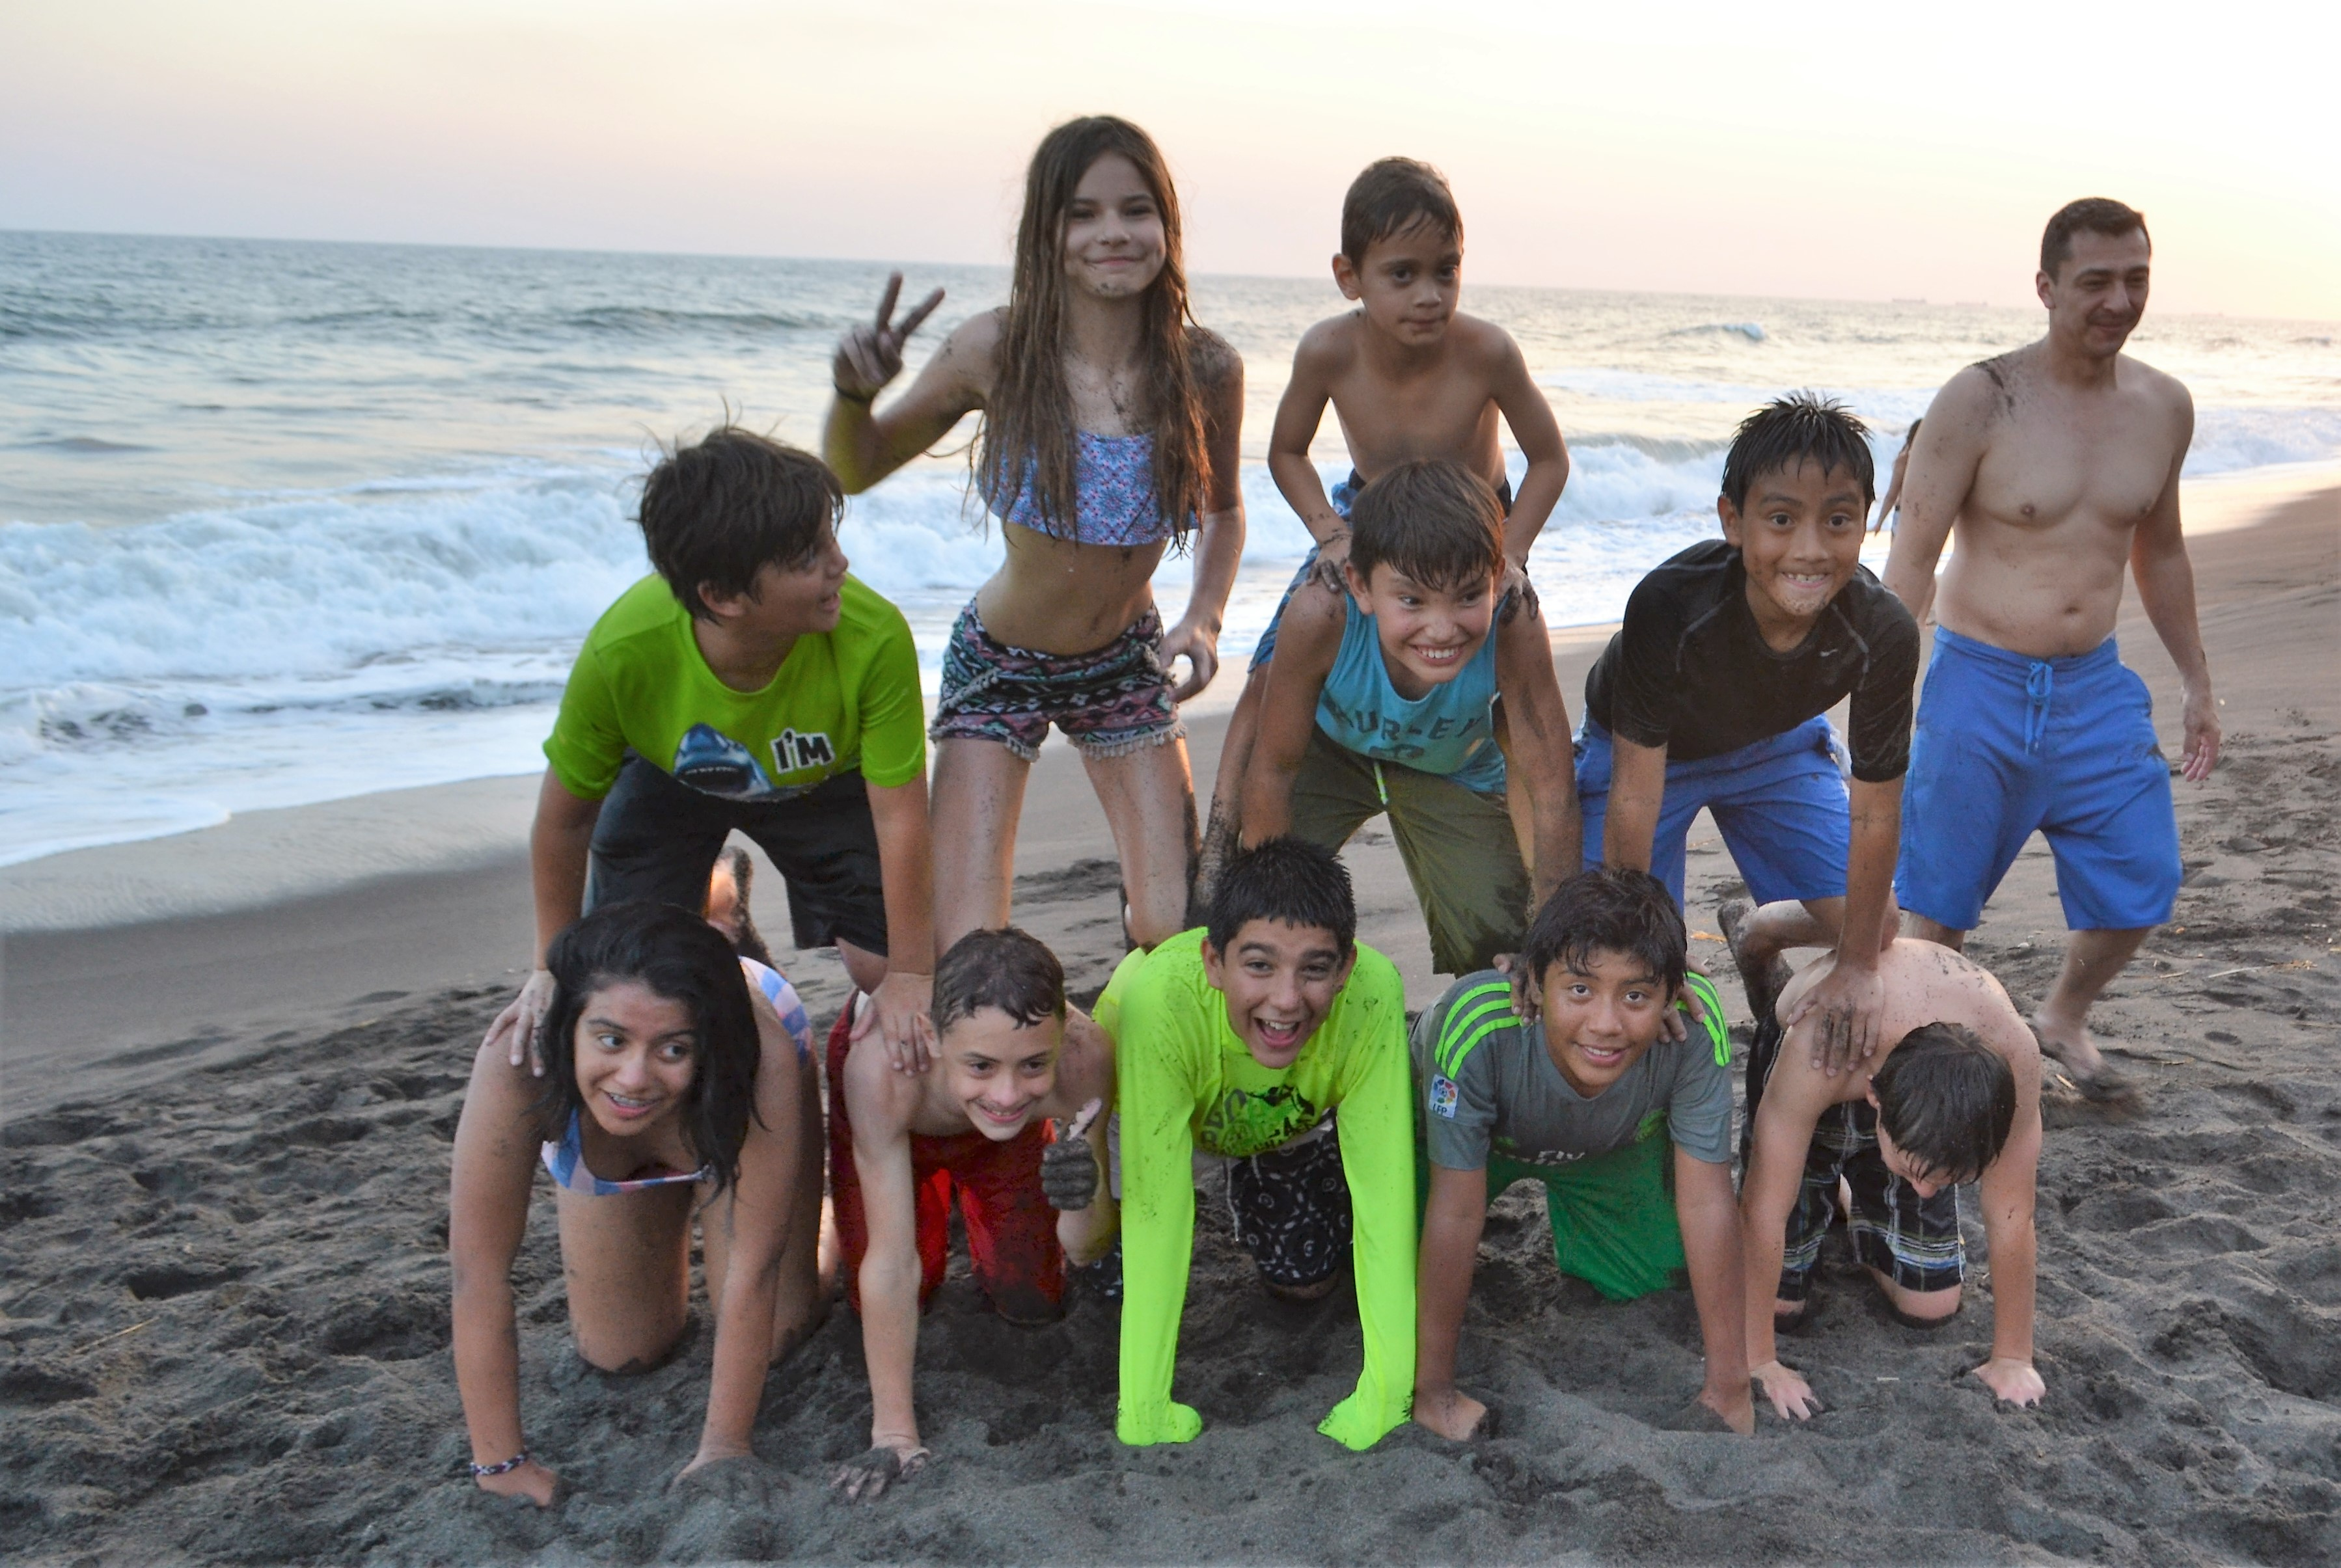 Beach Birthday Party - celebrating my son's 13th birthday